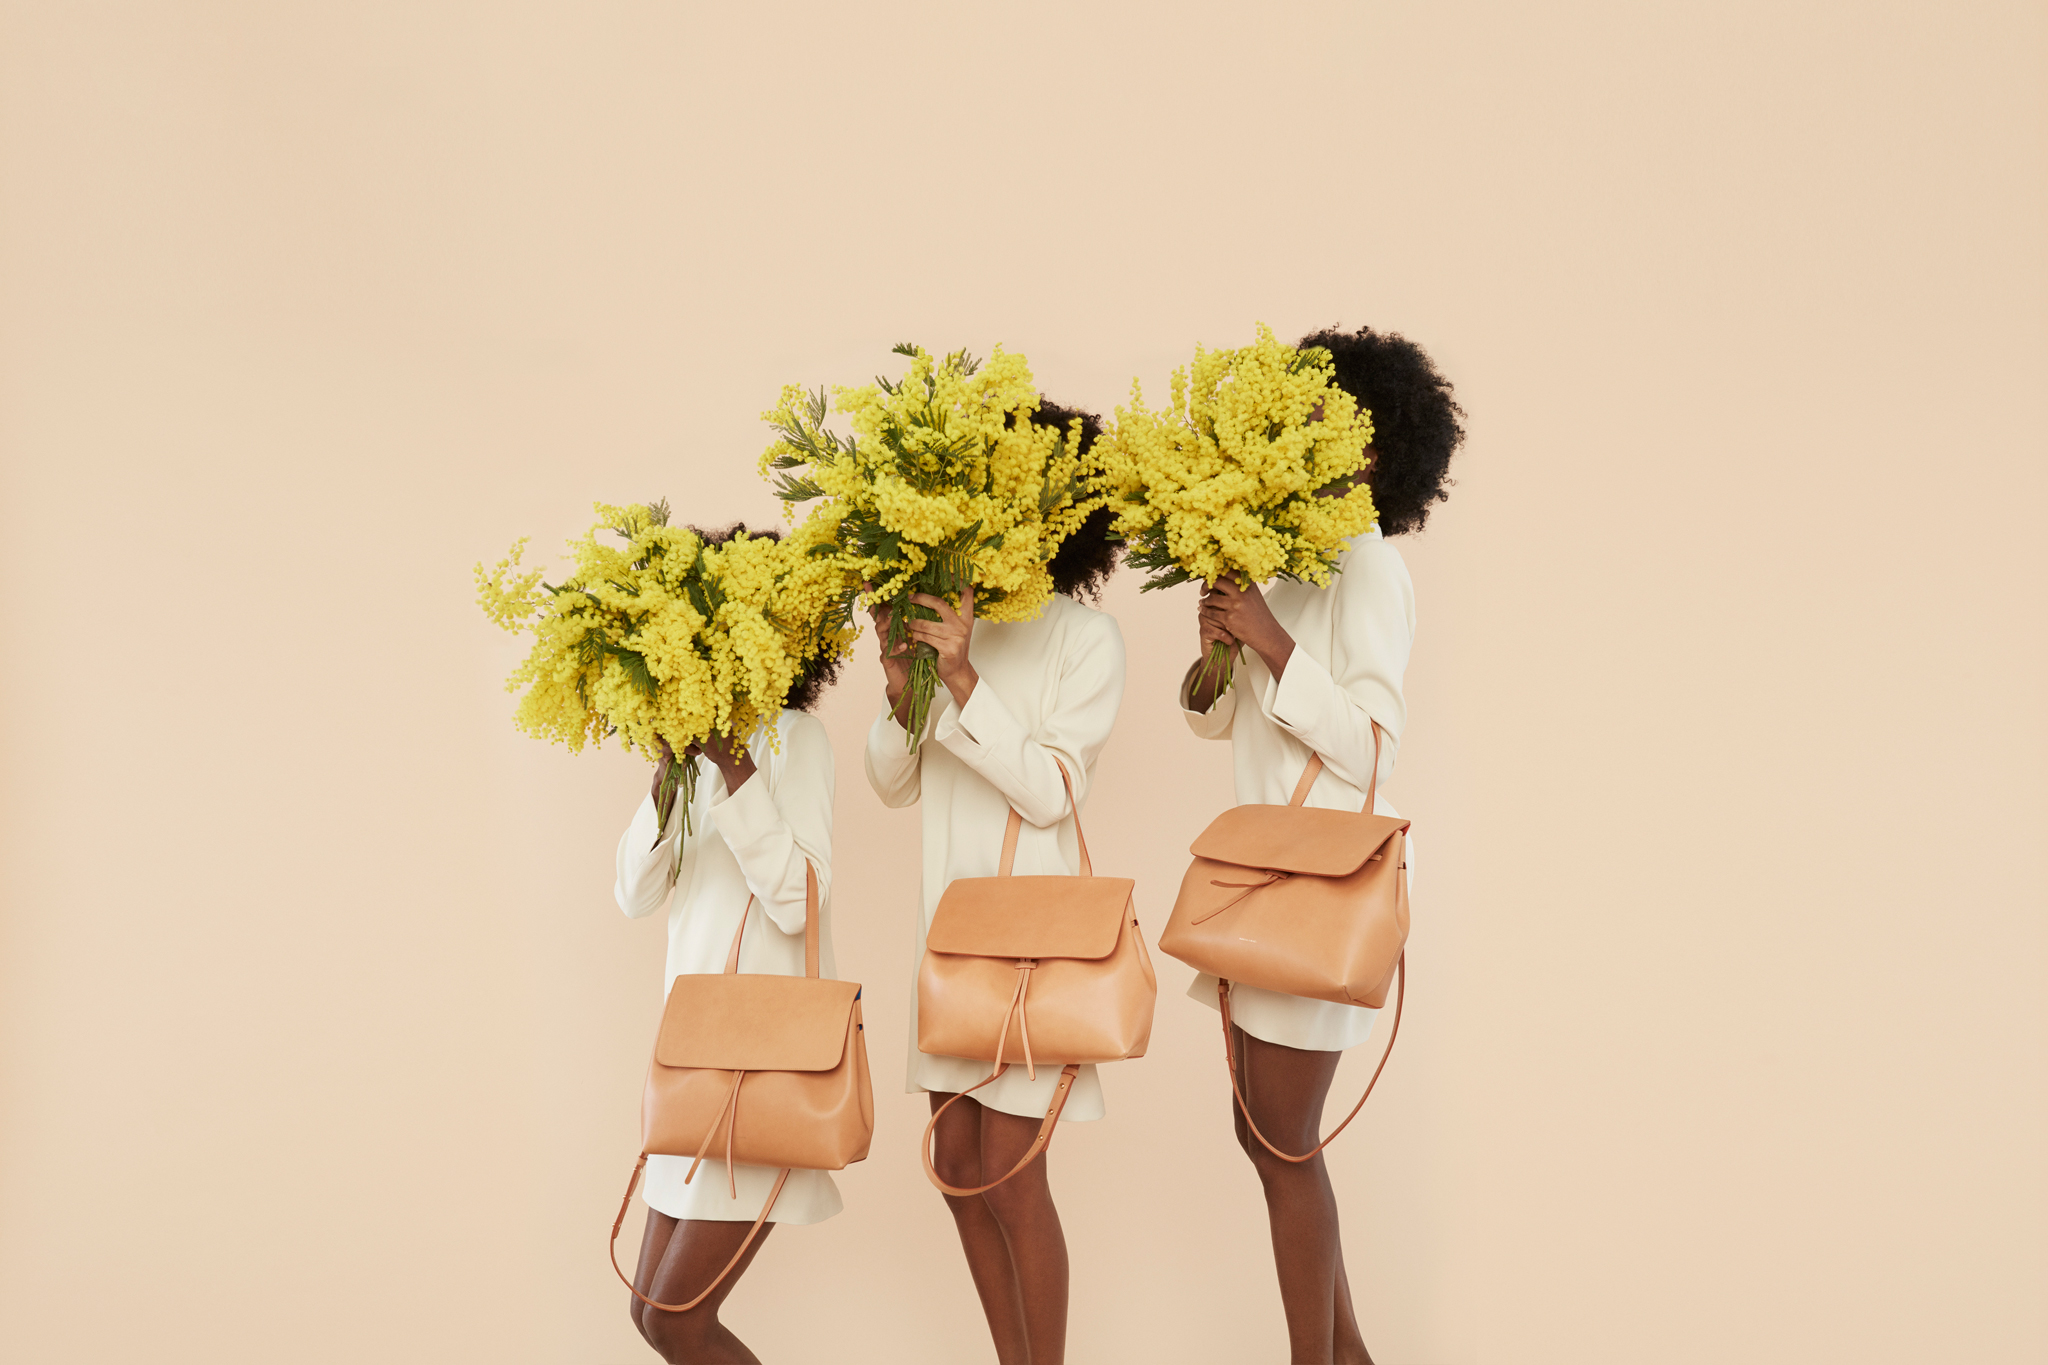 MG-AW15-3_MG-AW15-5_MANSUR-GAVRIEL-ANTI-IT-BAG_MANSUR-GAVRIEL-THE-LADY-BAG_MANSUR-GAVRIEL-THE-CROSSBODY_MANSUR-GAVRIEL